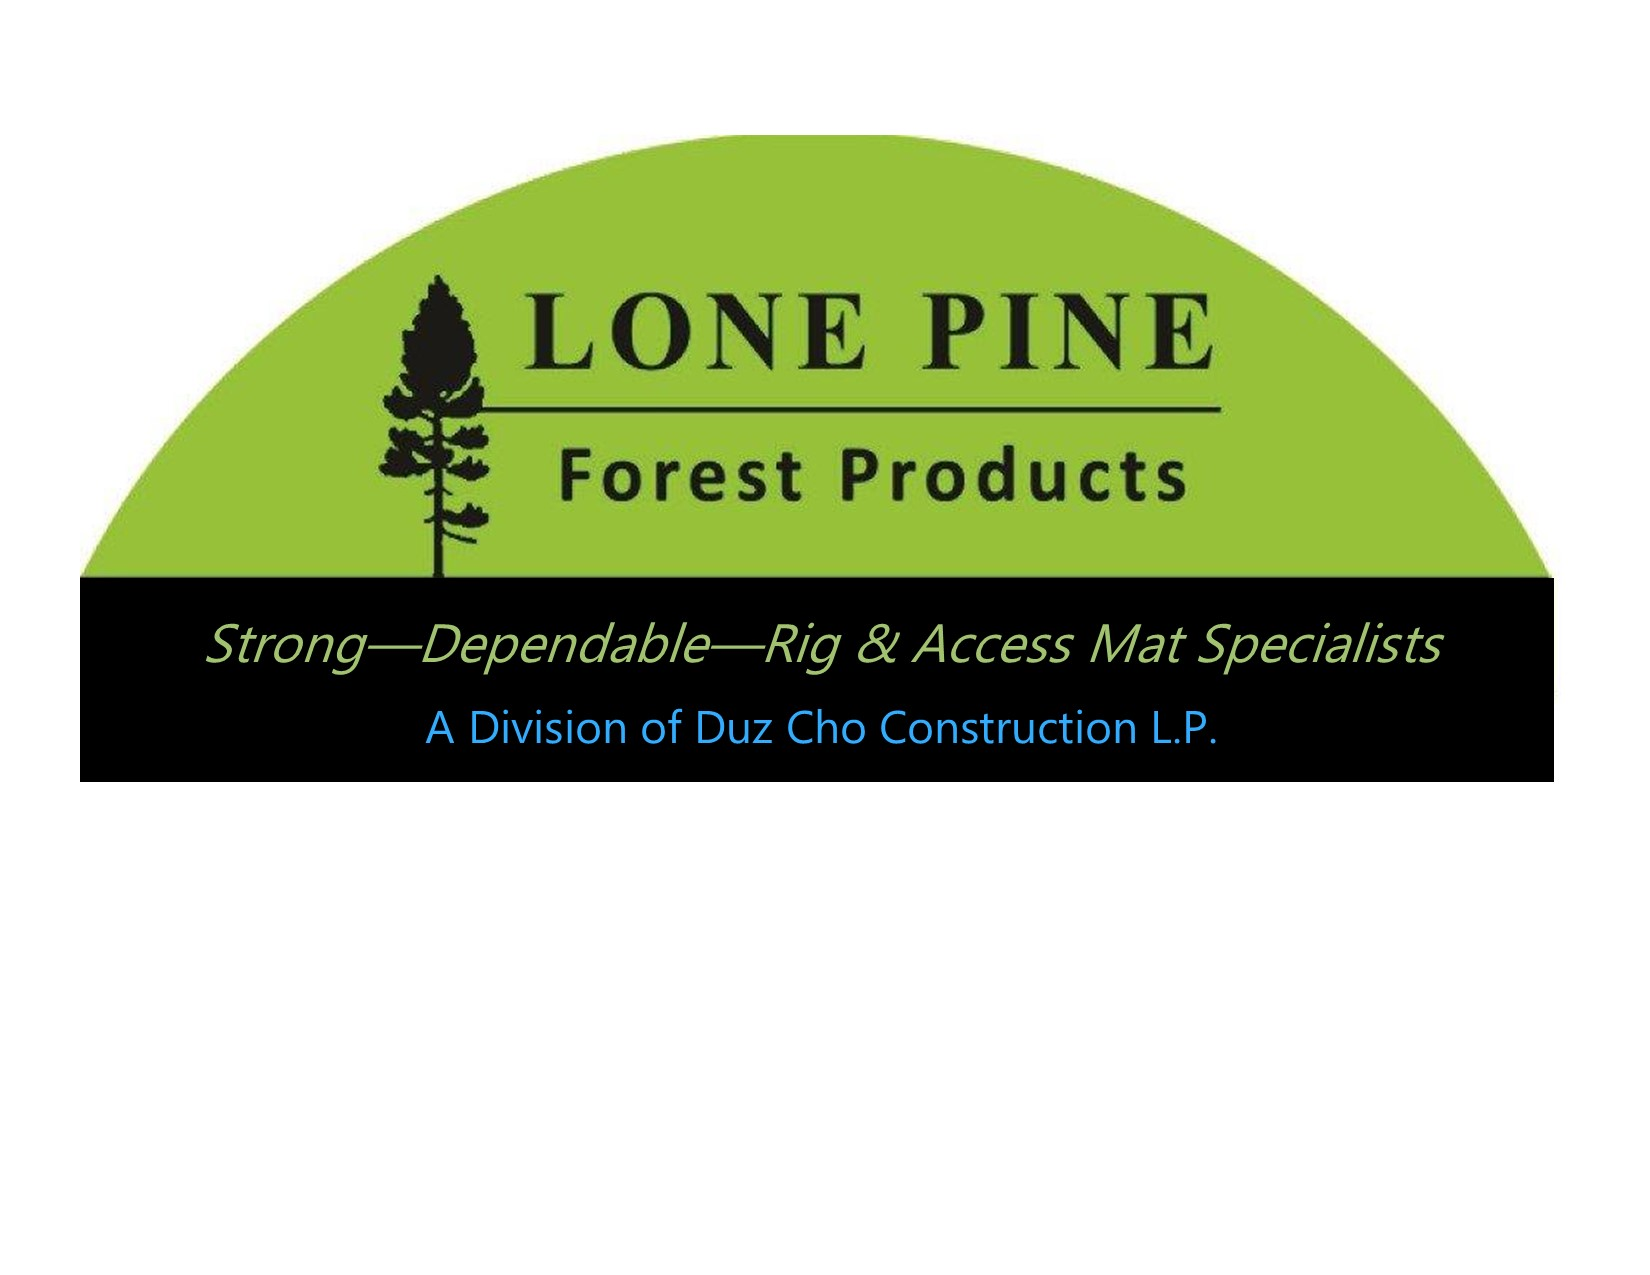 Lone Pine Forest Products